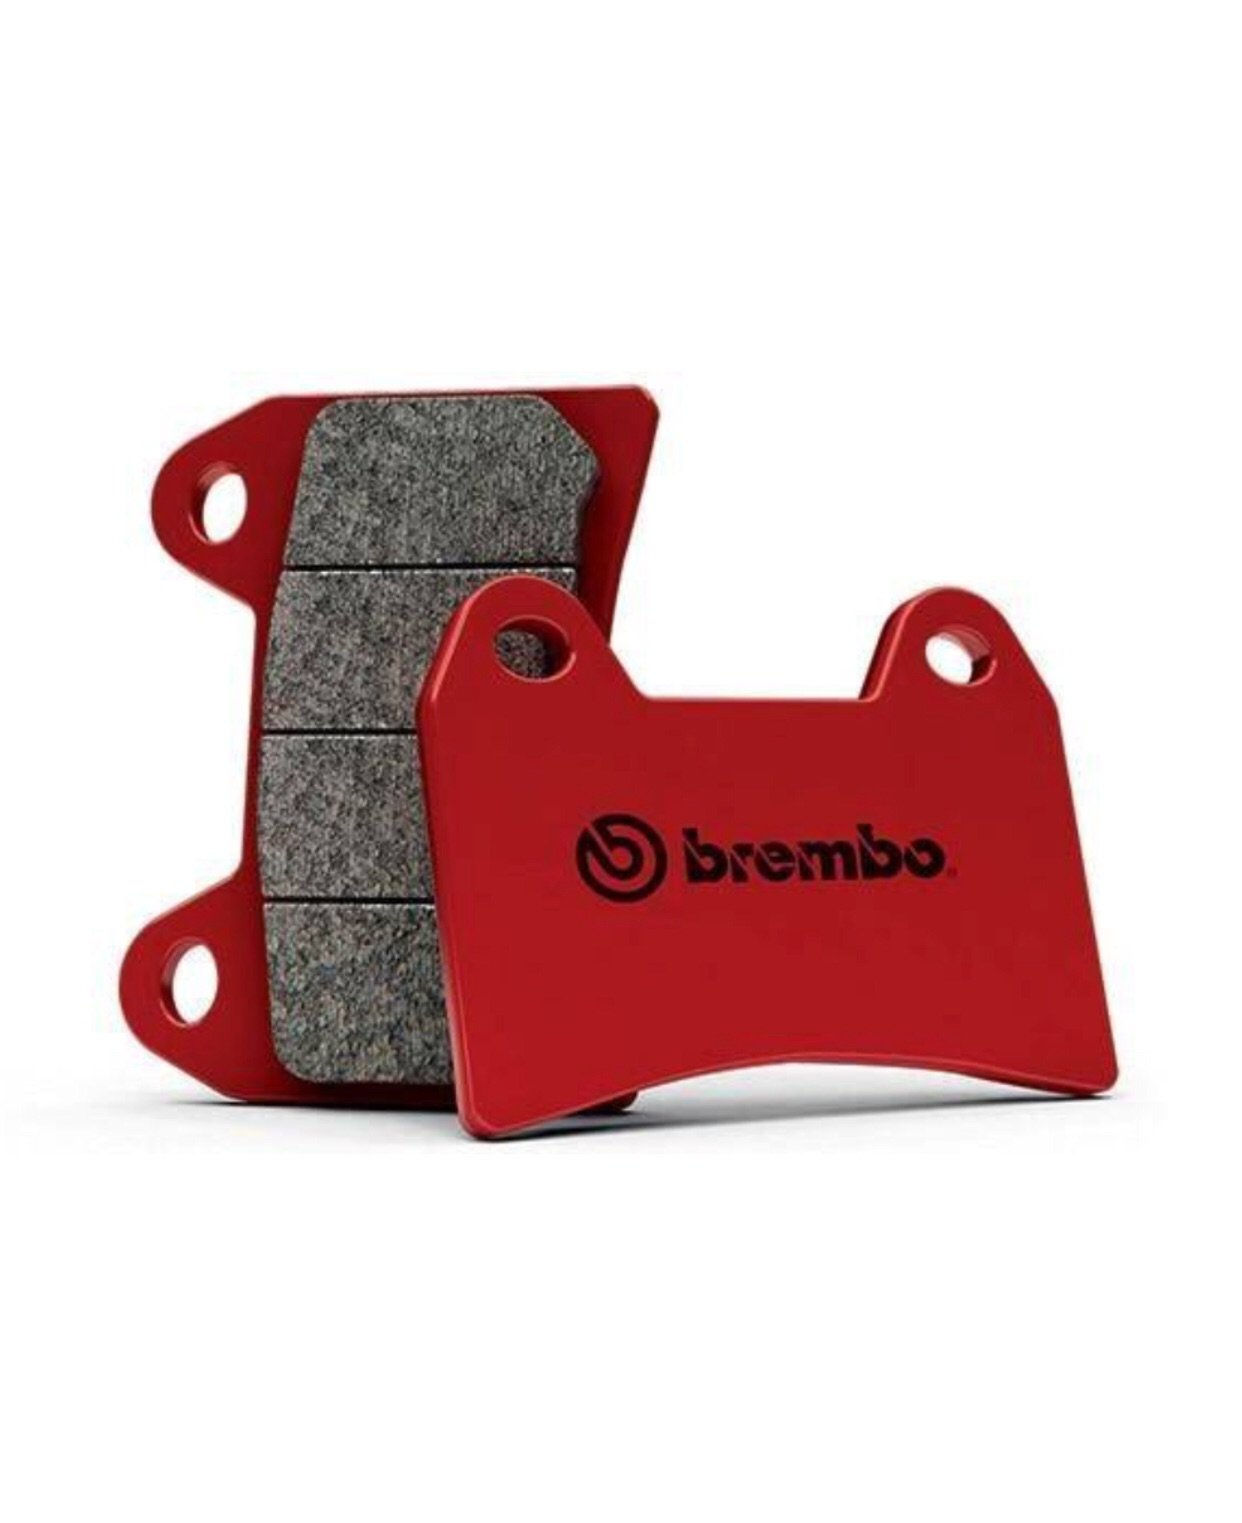 Suzuki, Brake Pads, Brembo - Race and Trackday Parts